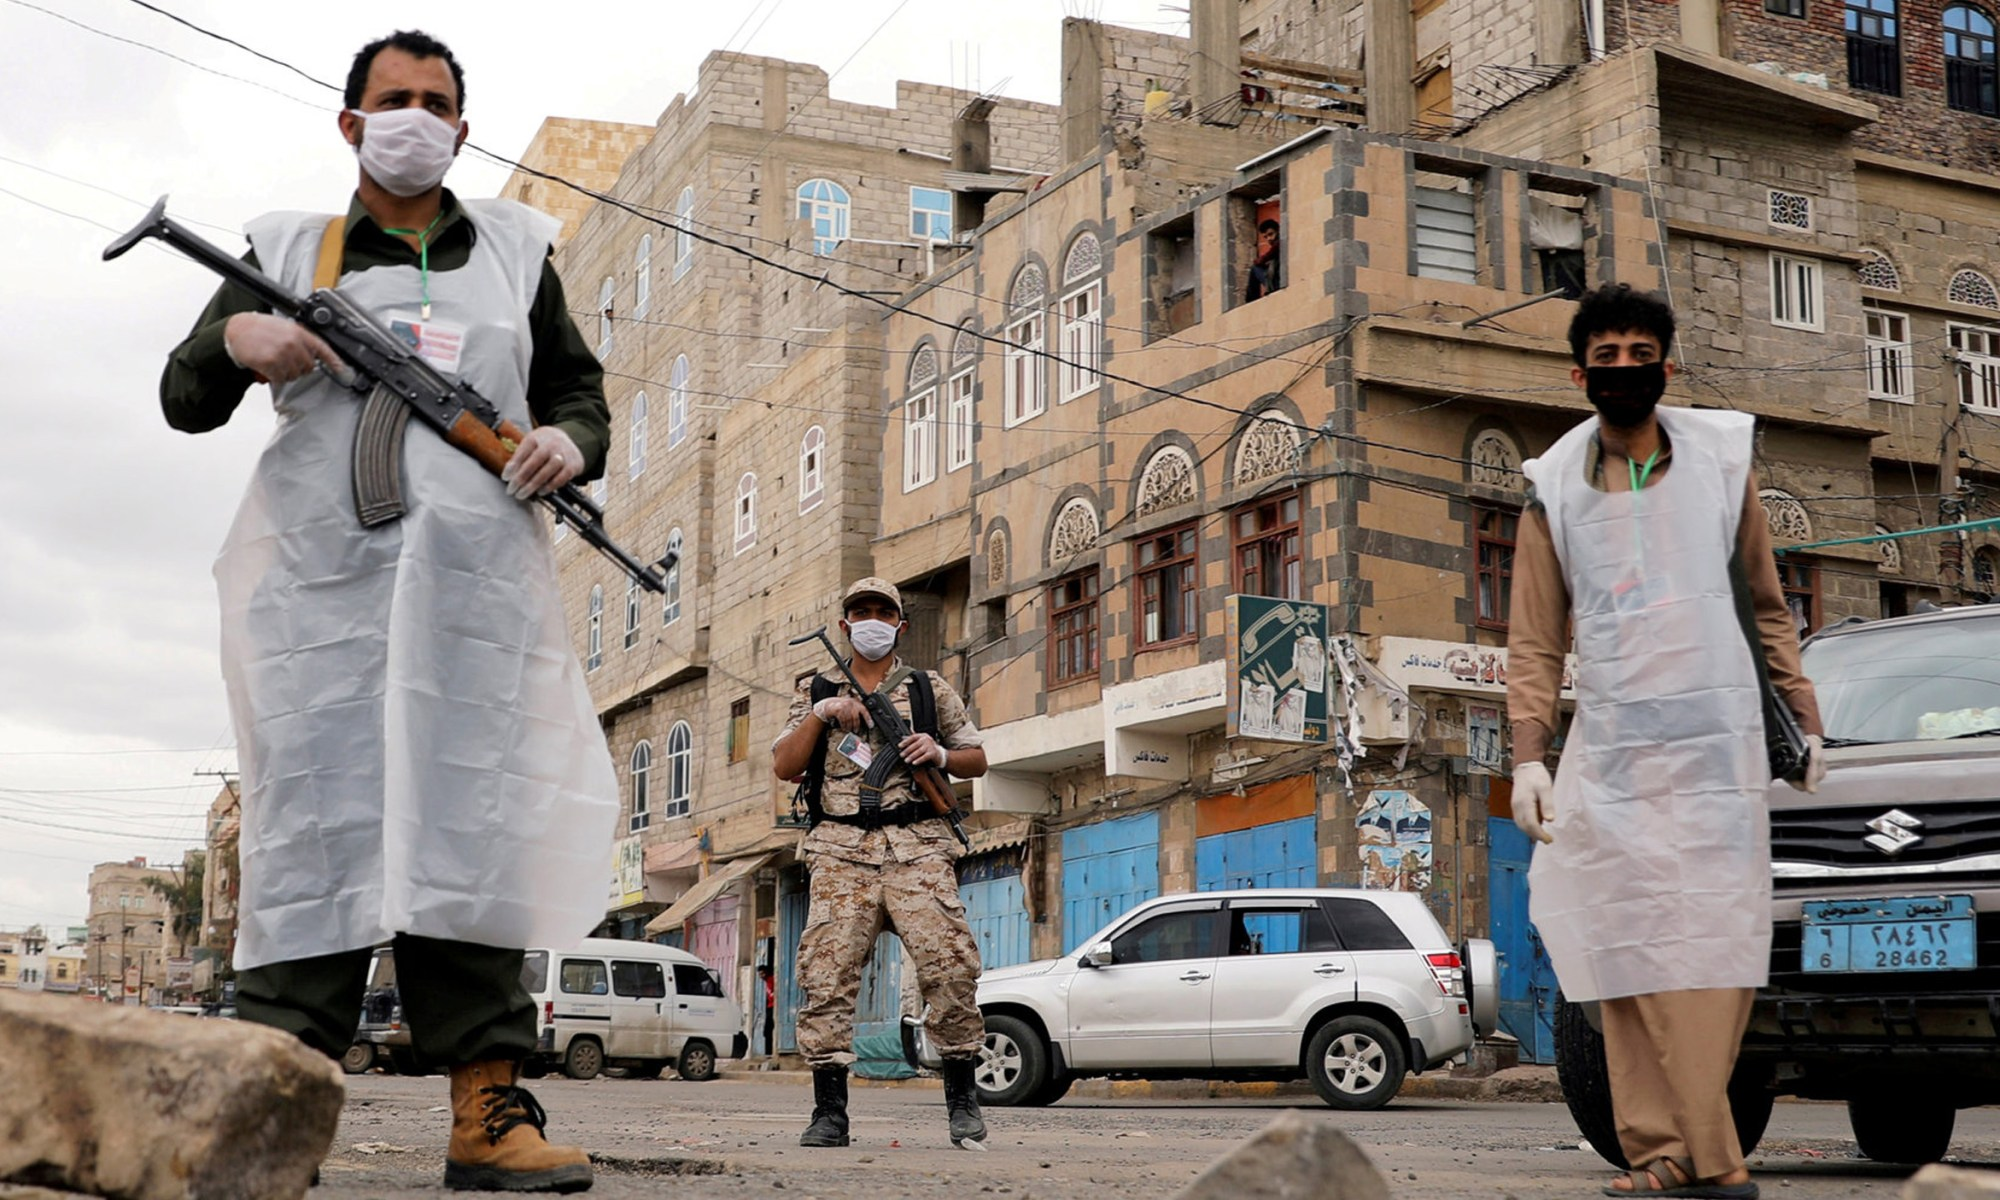 Men standing in masks with gun in hands on Yemeni street.